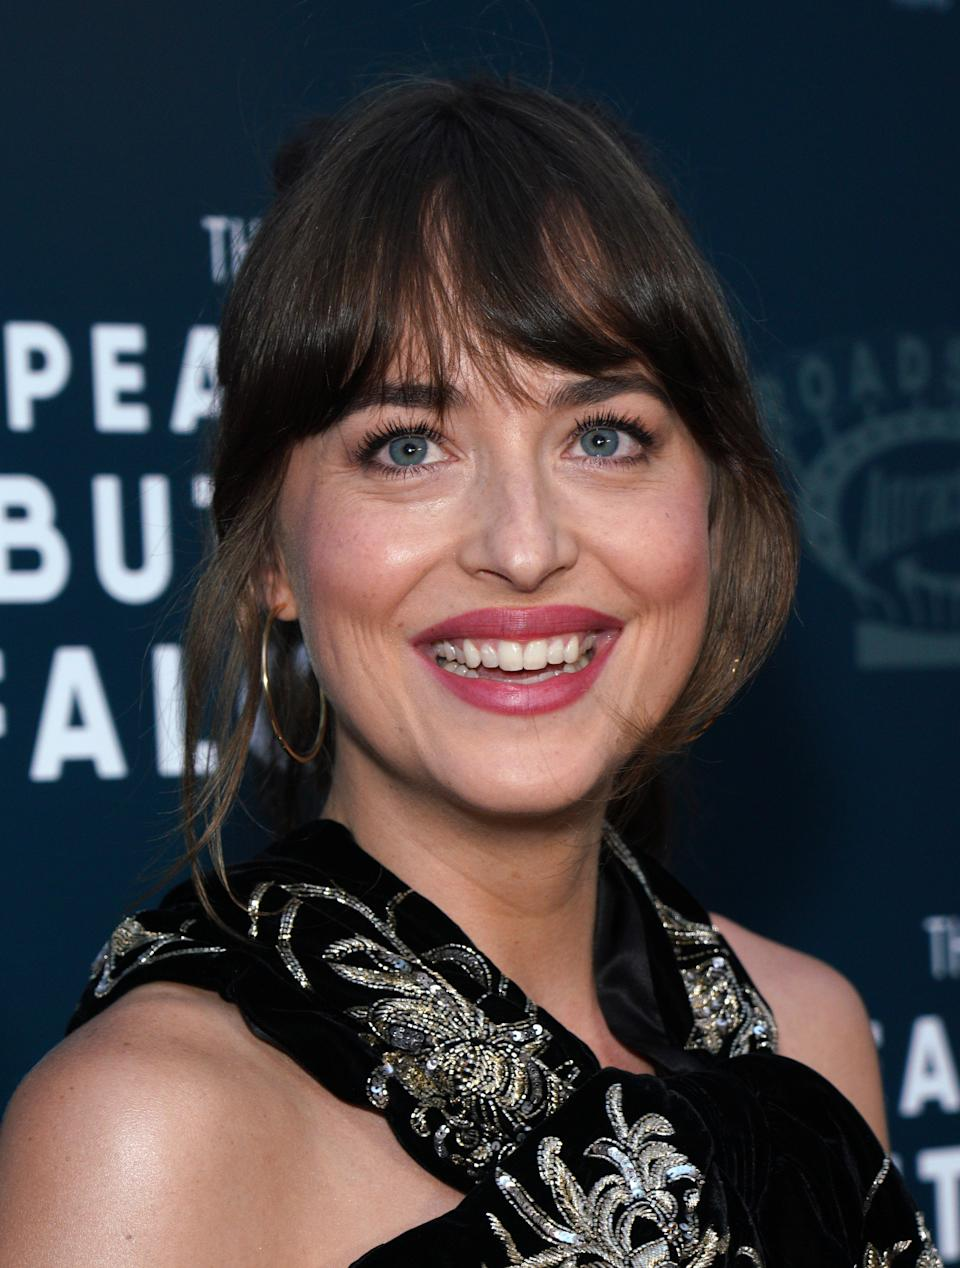 HOLLYWOOD, CALIFORNIA - AUGUST 01: Actress Dakota Johnson attends the LA Special Screening of Roadside Attractions' 'The Peanut Butter Falcon' at ArcLight Hollywood on August 01, 2019 in Hollywood, California. (Photo by JC Olivera/WireImage)